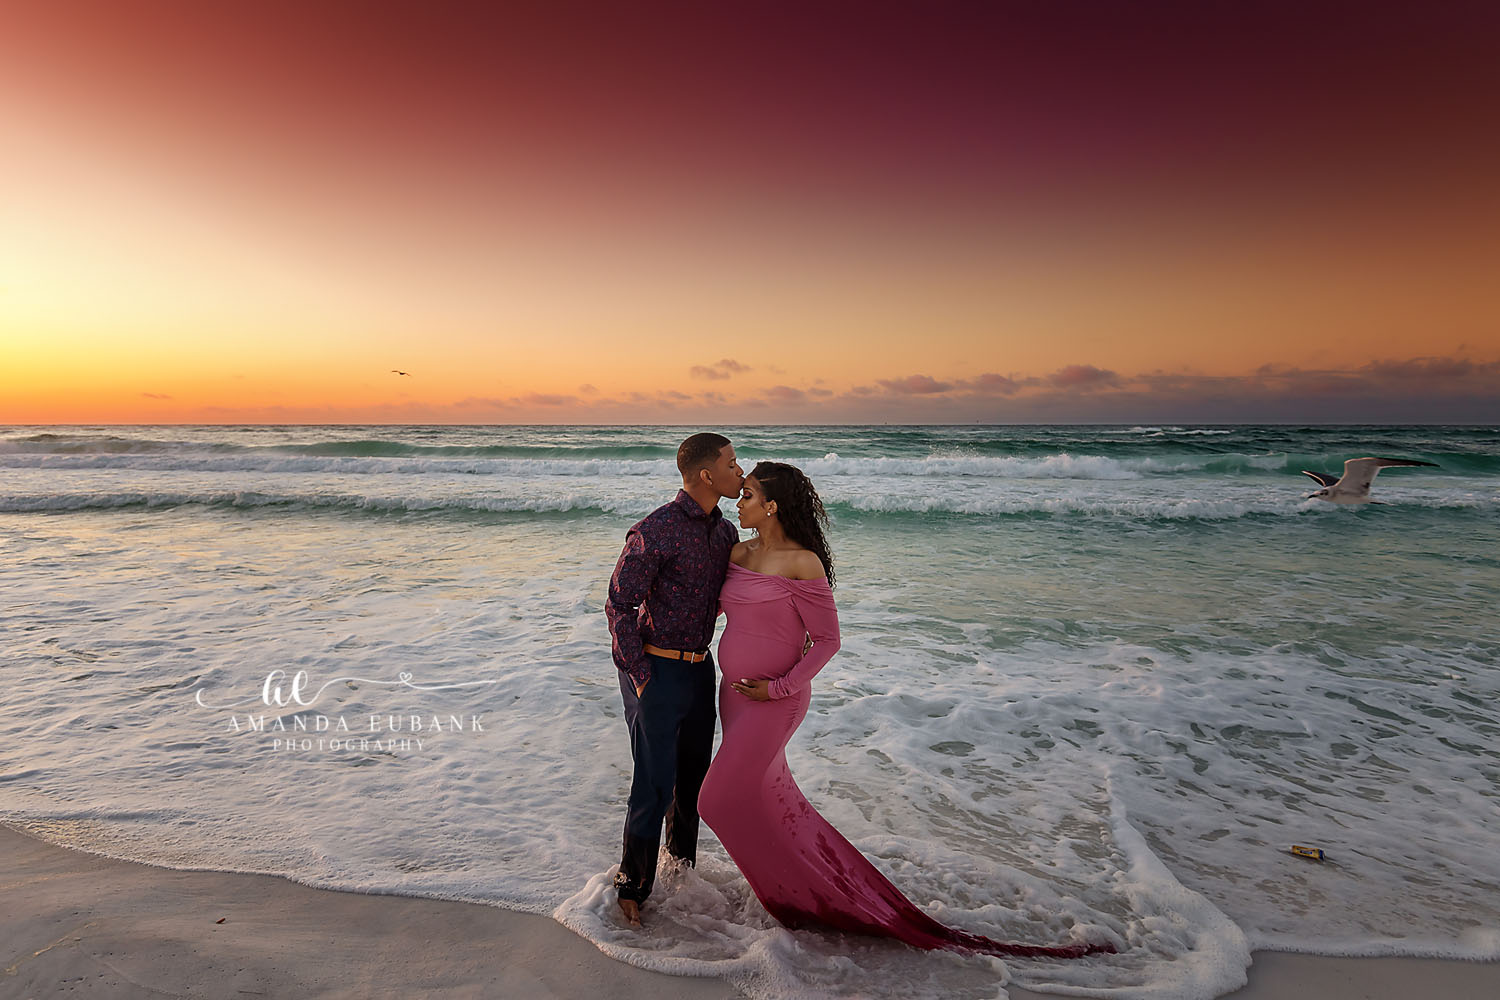 Amanda Rosa Play Boy maternity photography - amanda eubank photography | 30a